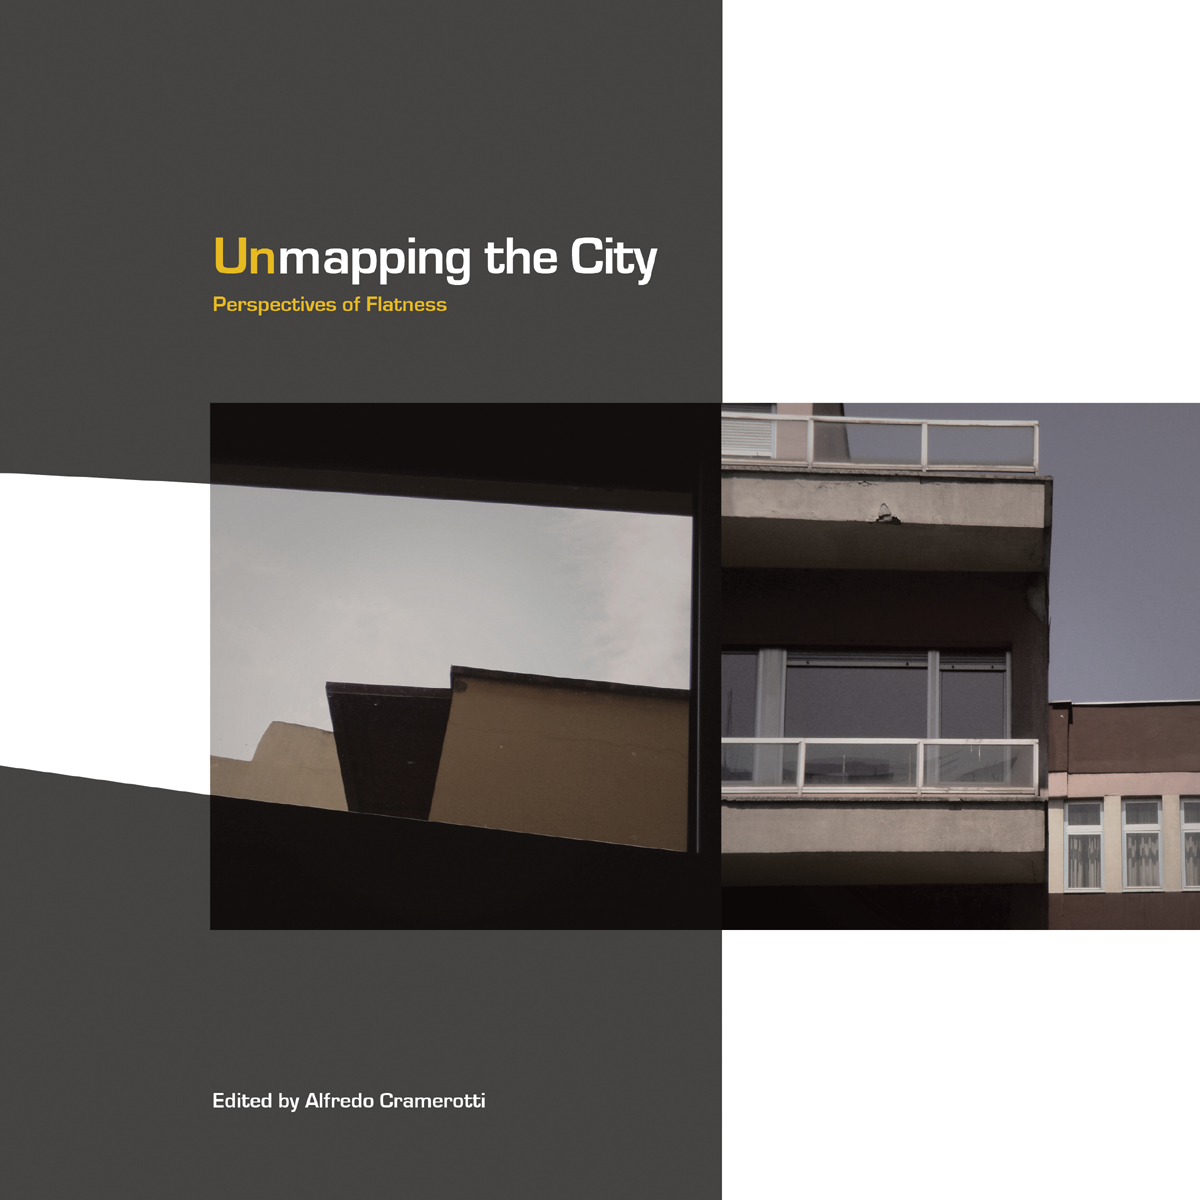 Unmapping the City: Perspectives of Flatness